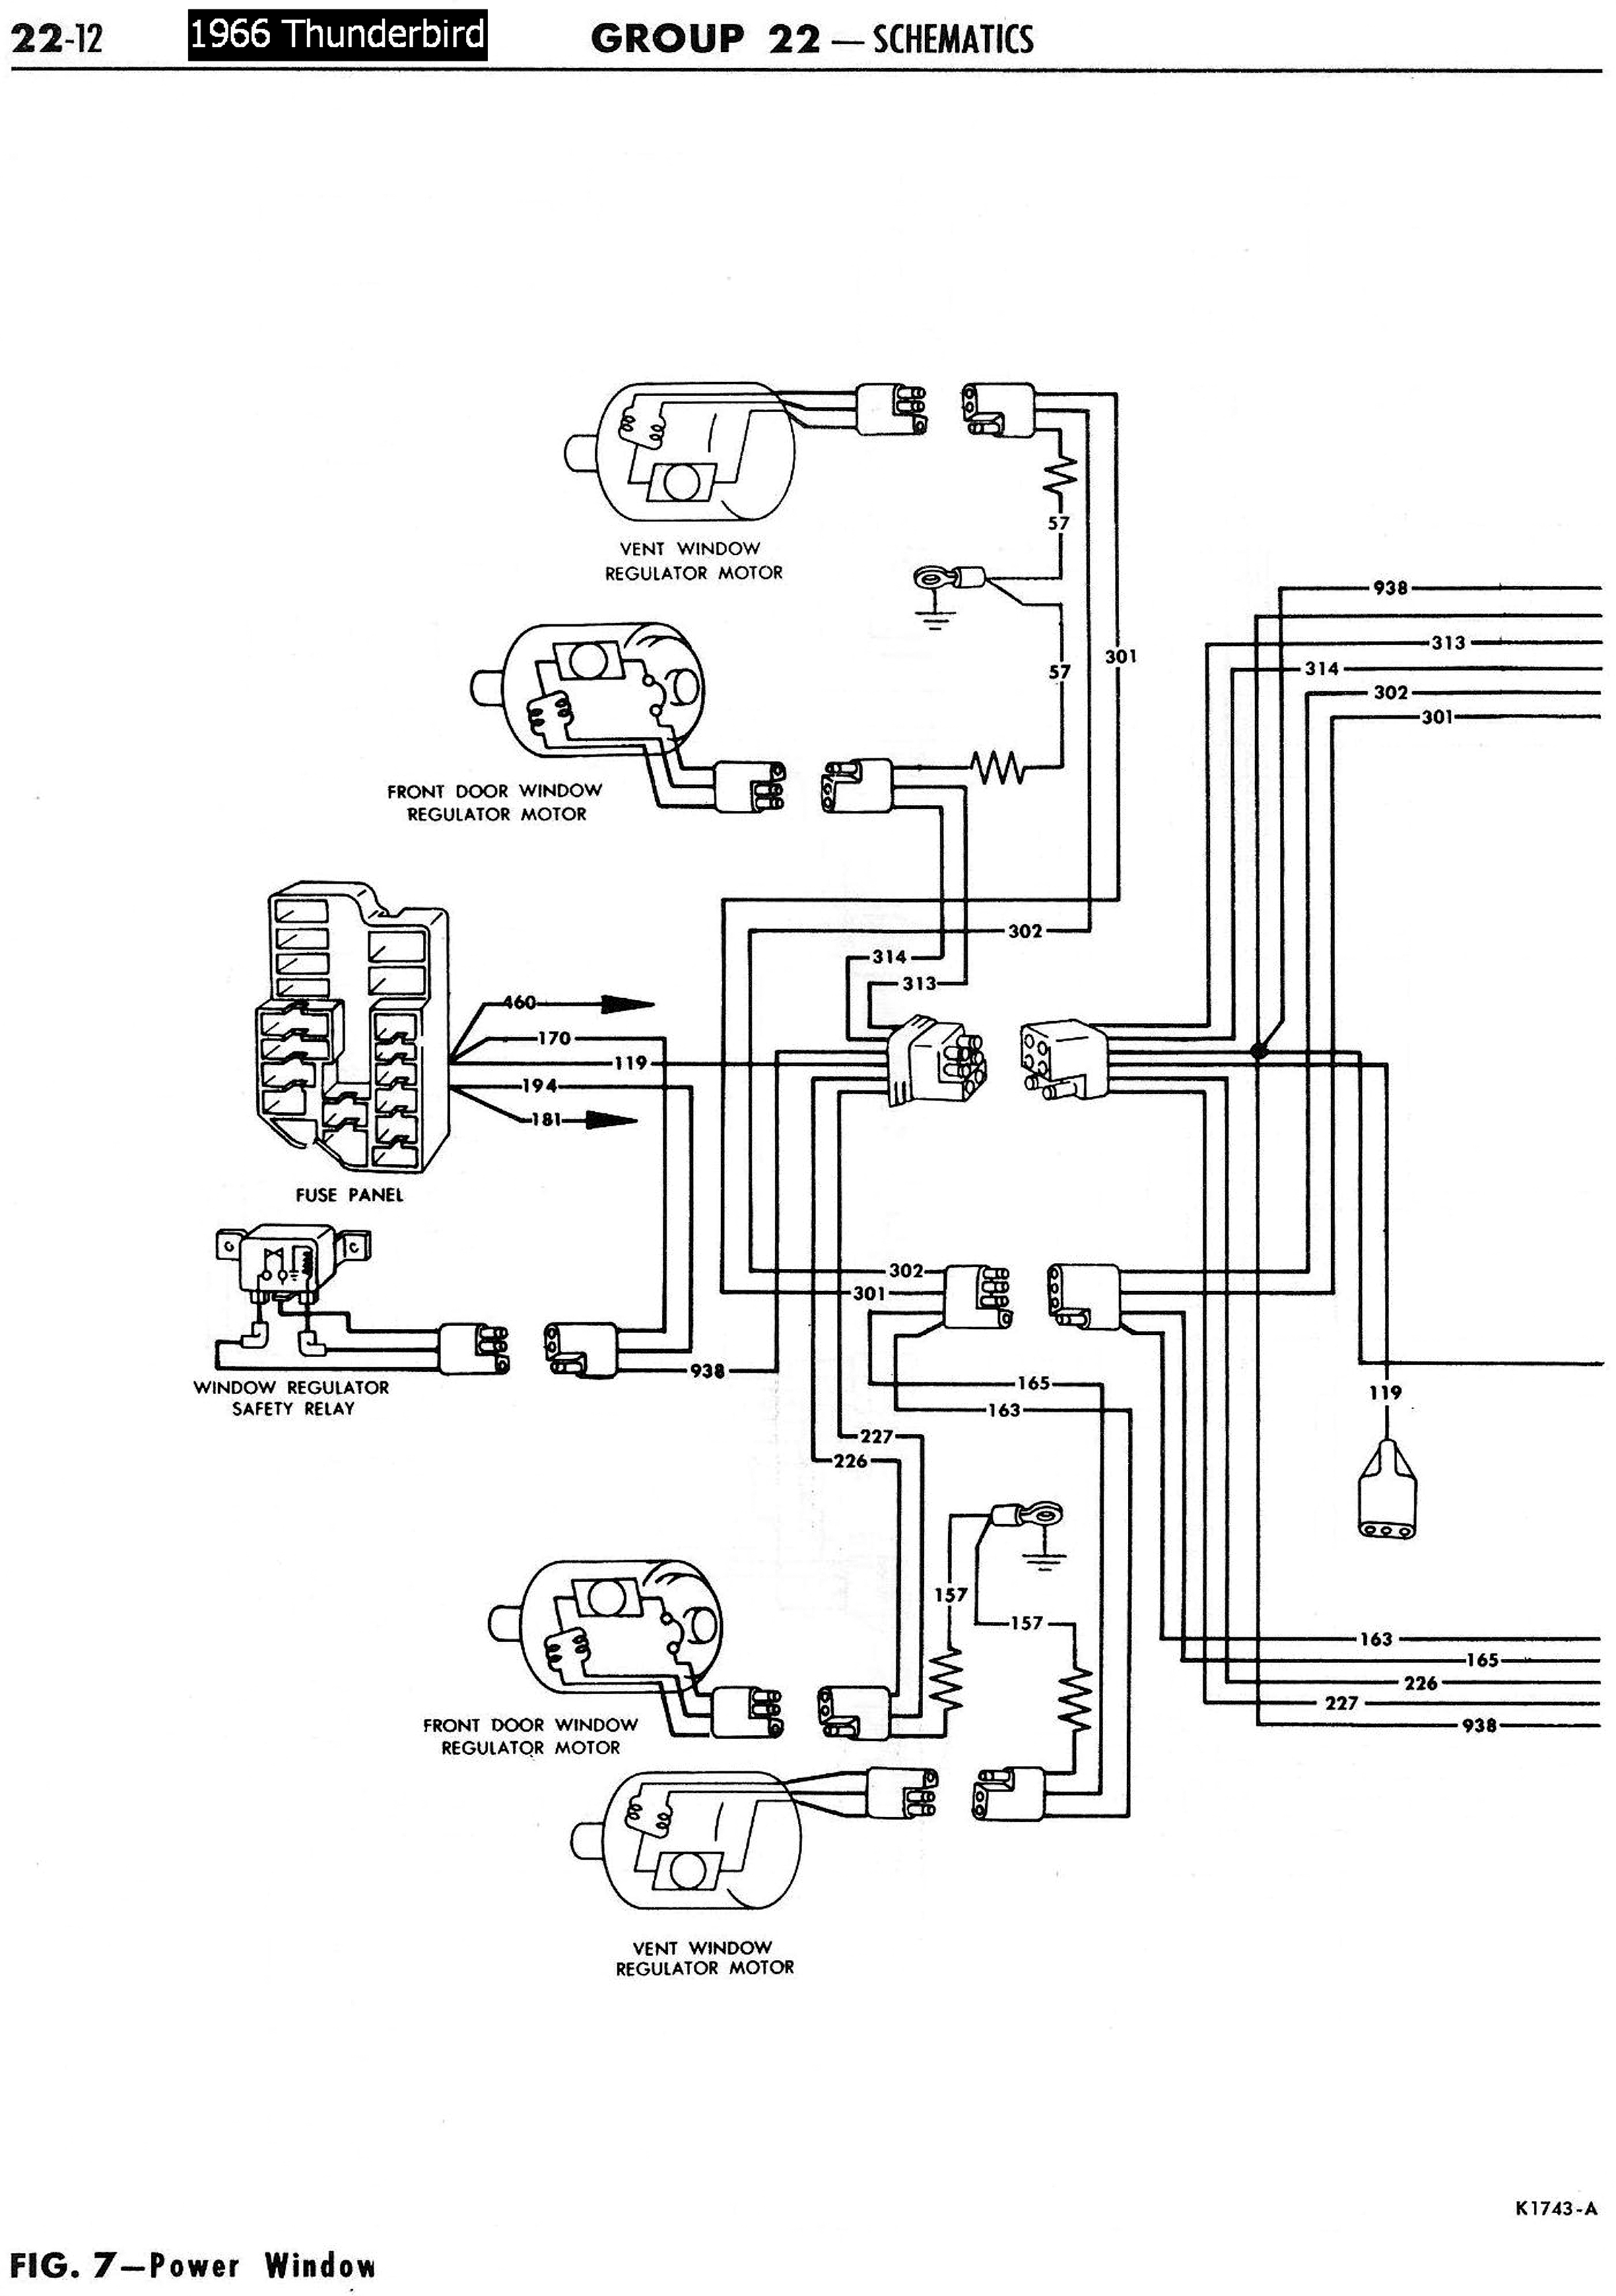 1964 Ford T Bird Wiring Diagram Trusted 68 Headlight Switch Free Picture 1958 Electrical Schematics Galaxie 500